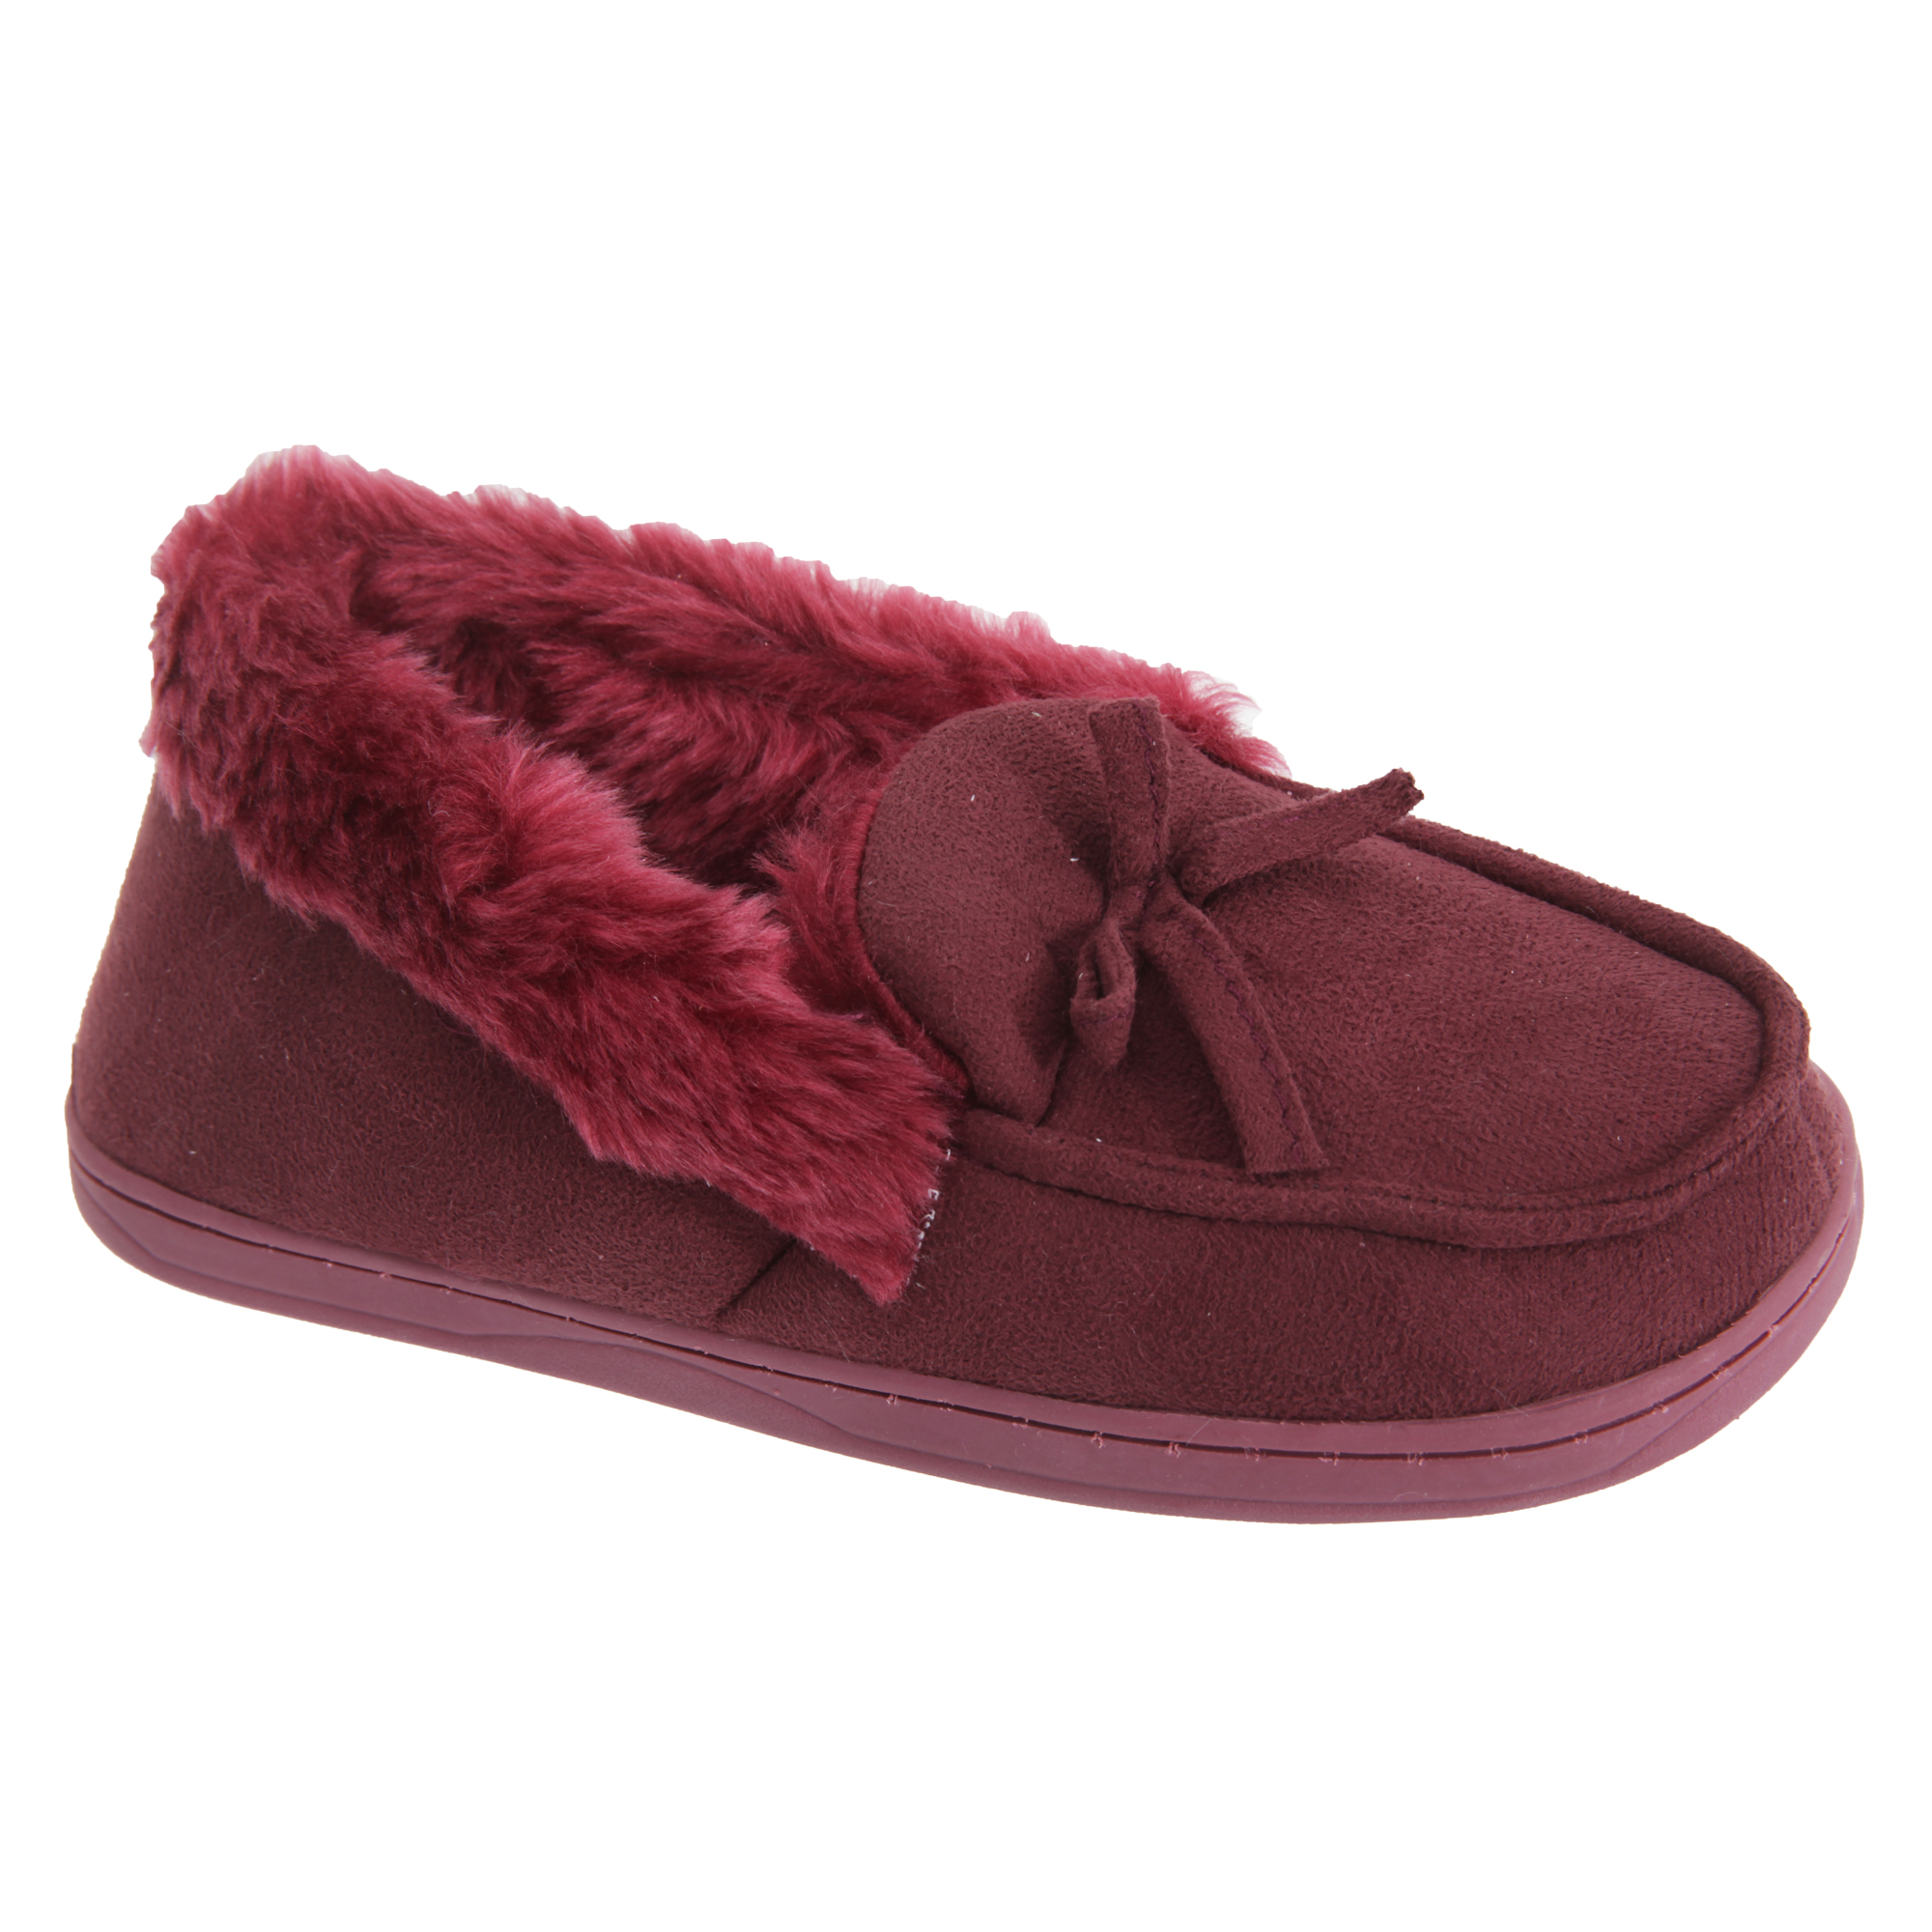 A cozy slipper is outfitted with supersoft faux-fur lining and a weatherproof sole with skid-resistant treads. It's machine washable, so you can toss it in the wash to freshen it up whenever you like Style Name:Acorn Chinchilla Faux Fur Slipper (Women).